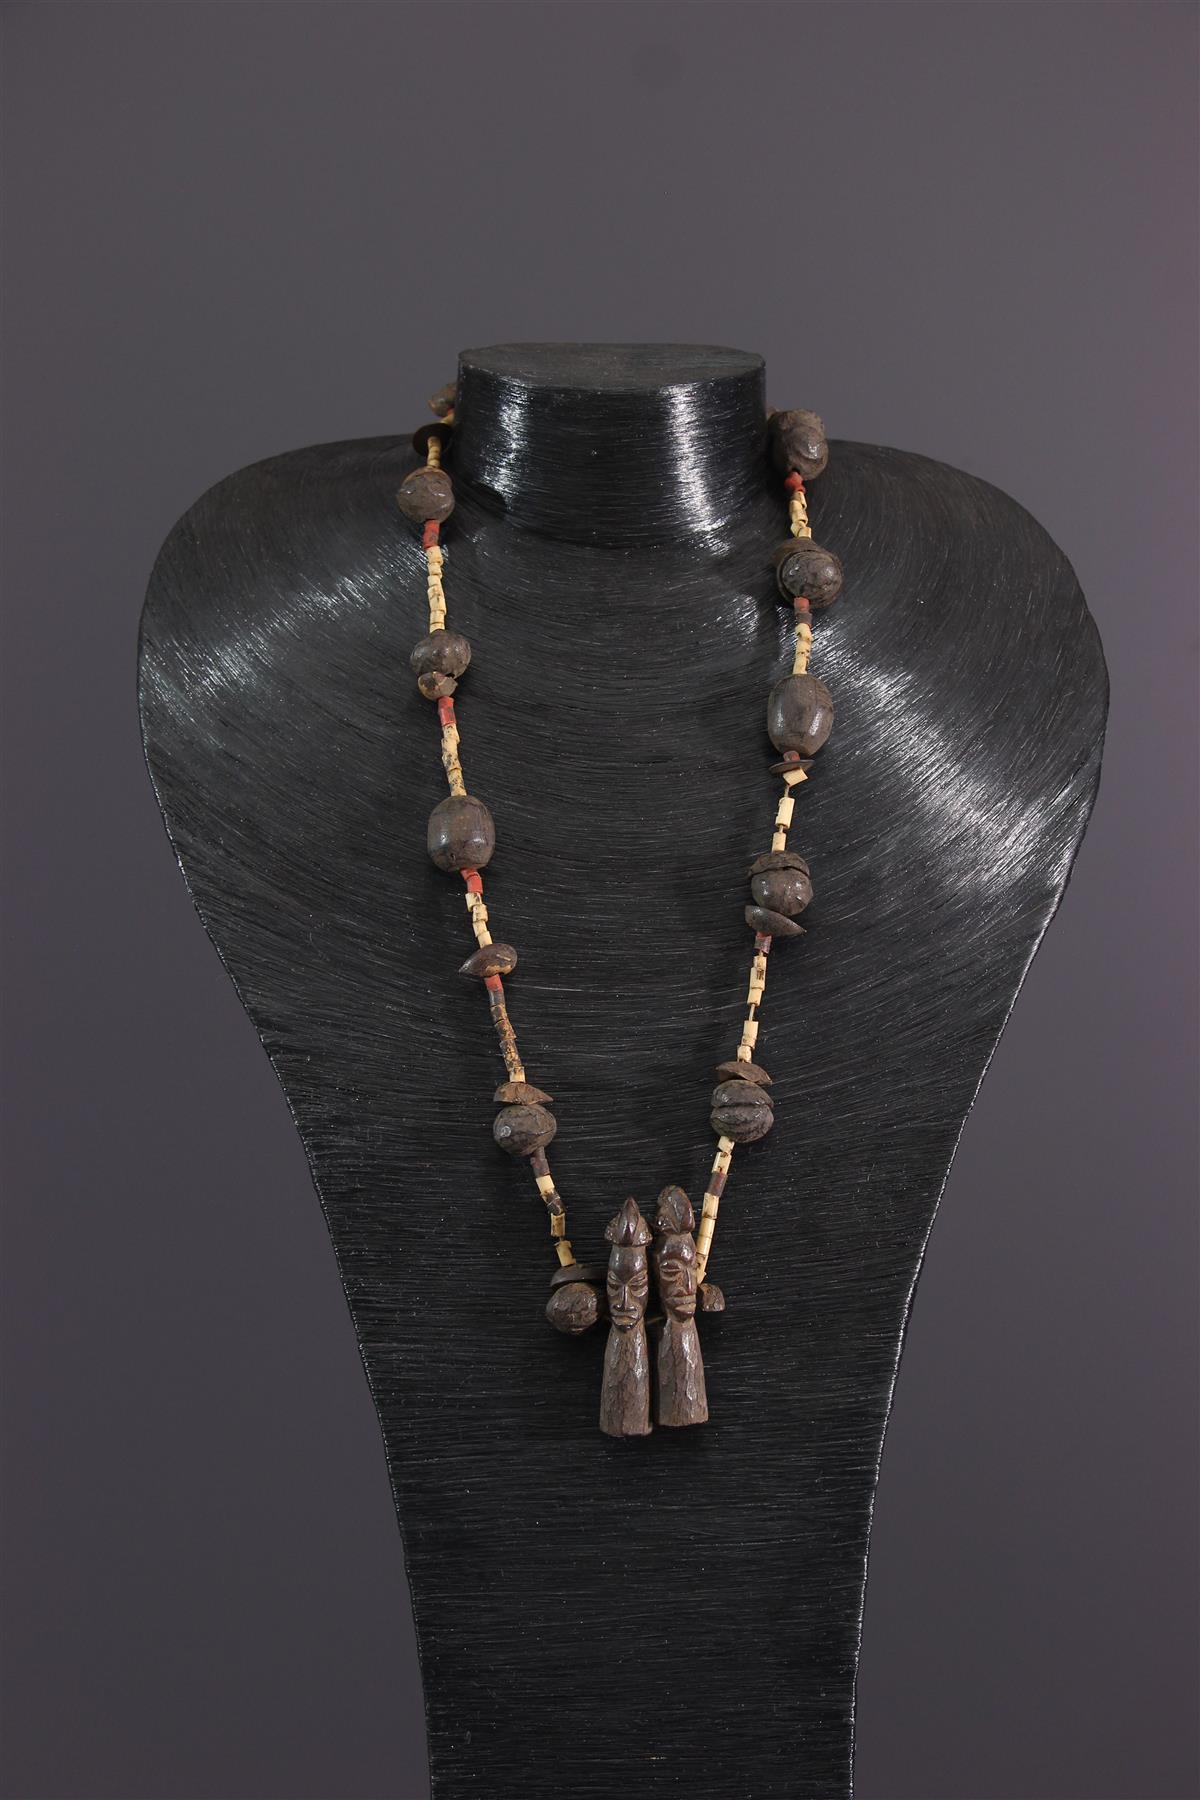 Yaka necklace - African art